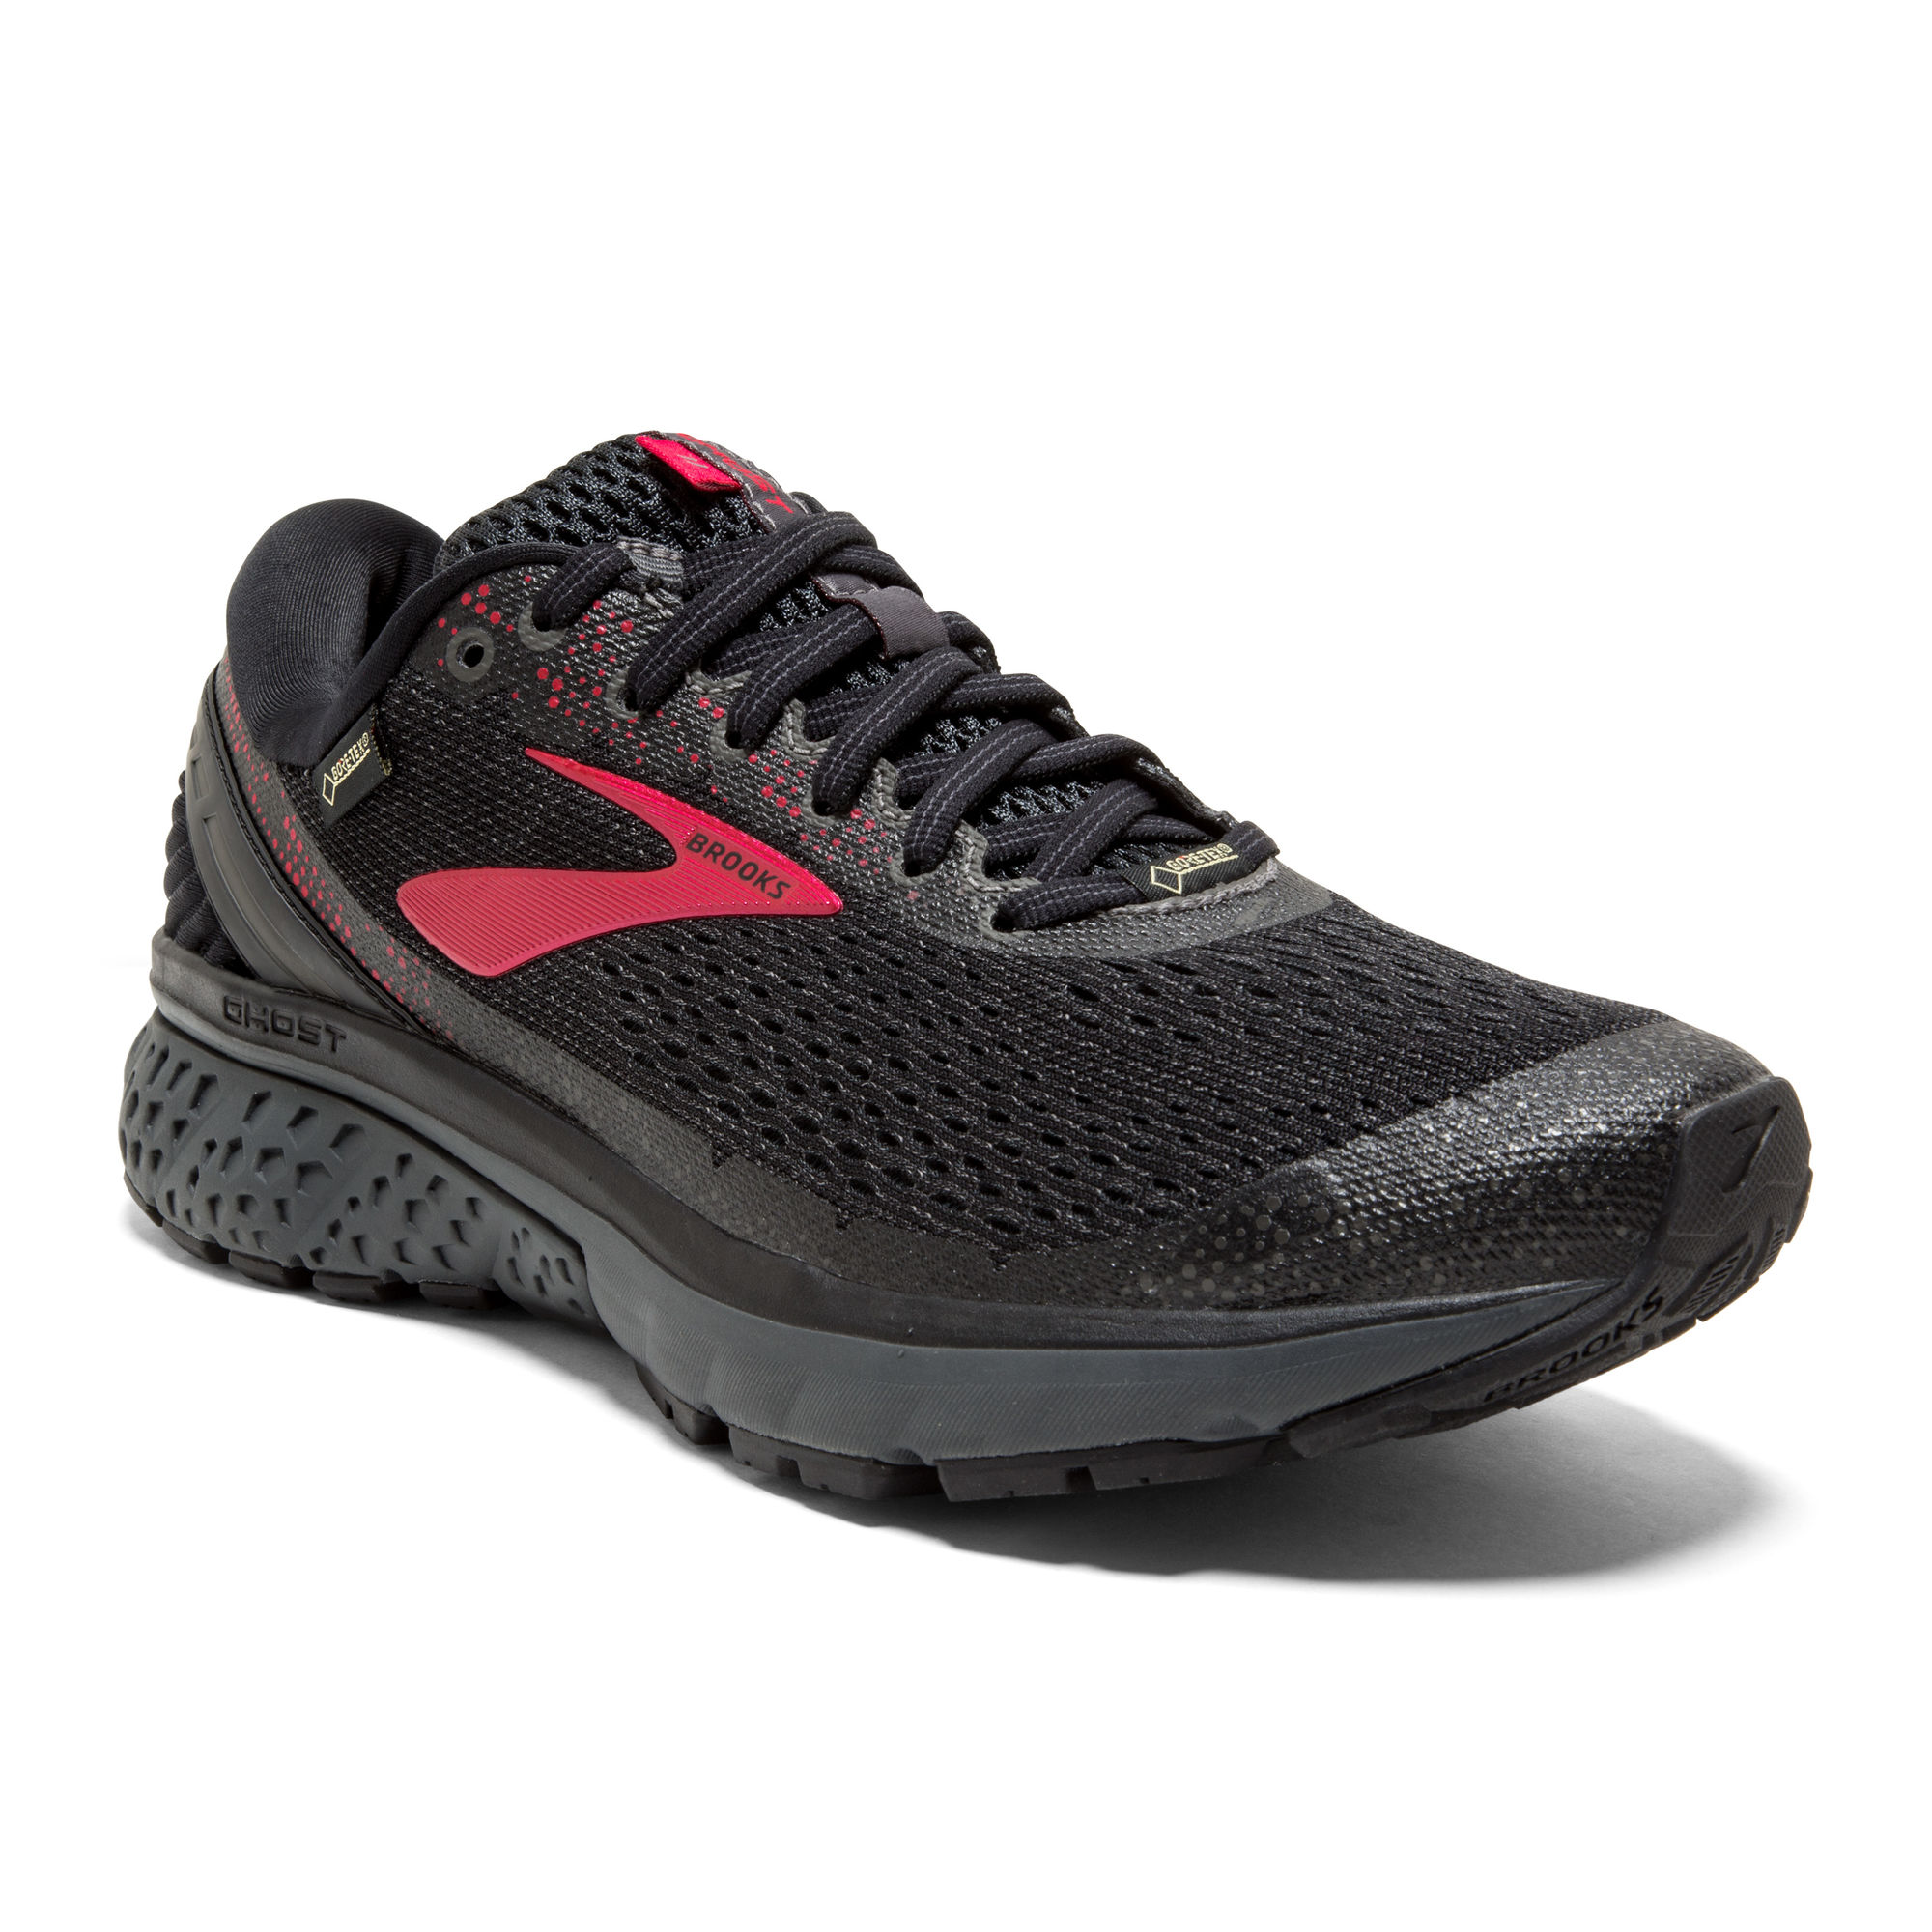 Brooks Lady Ghost 11 GTX in Schwarz Pink